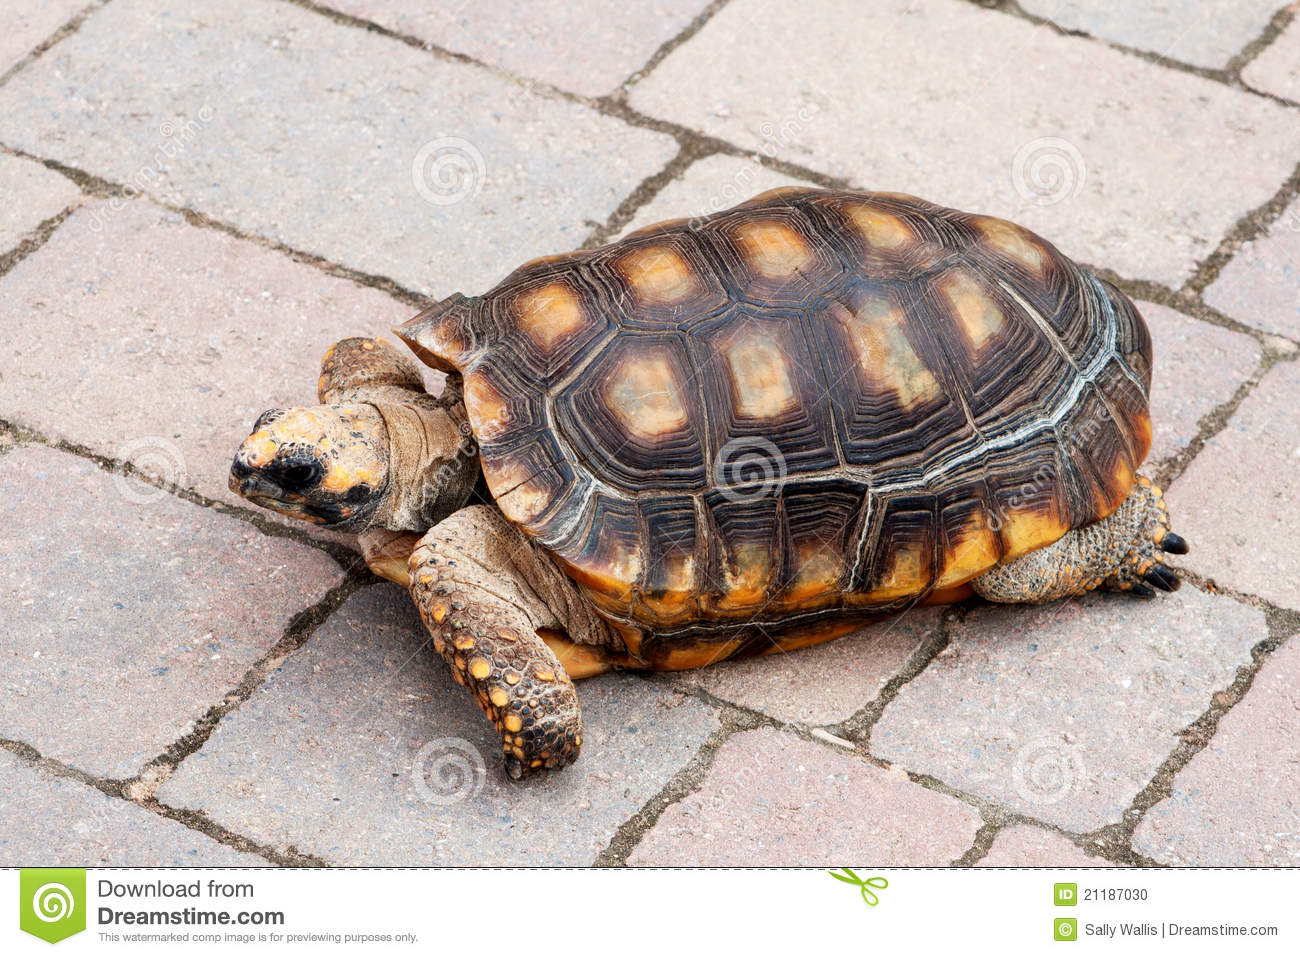 Tortoise meandering across pavement